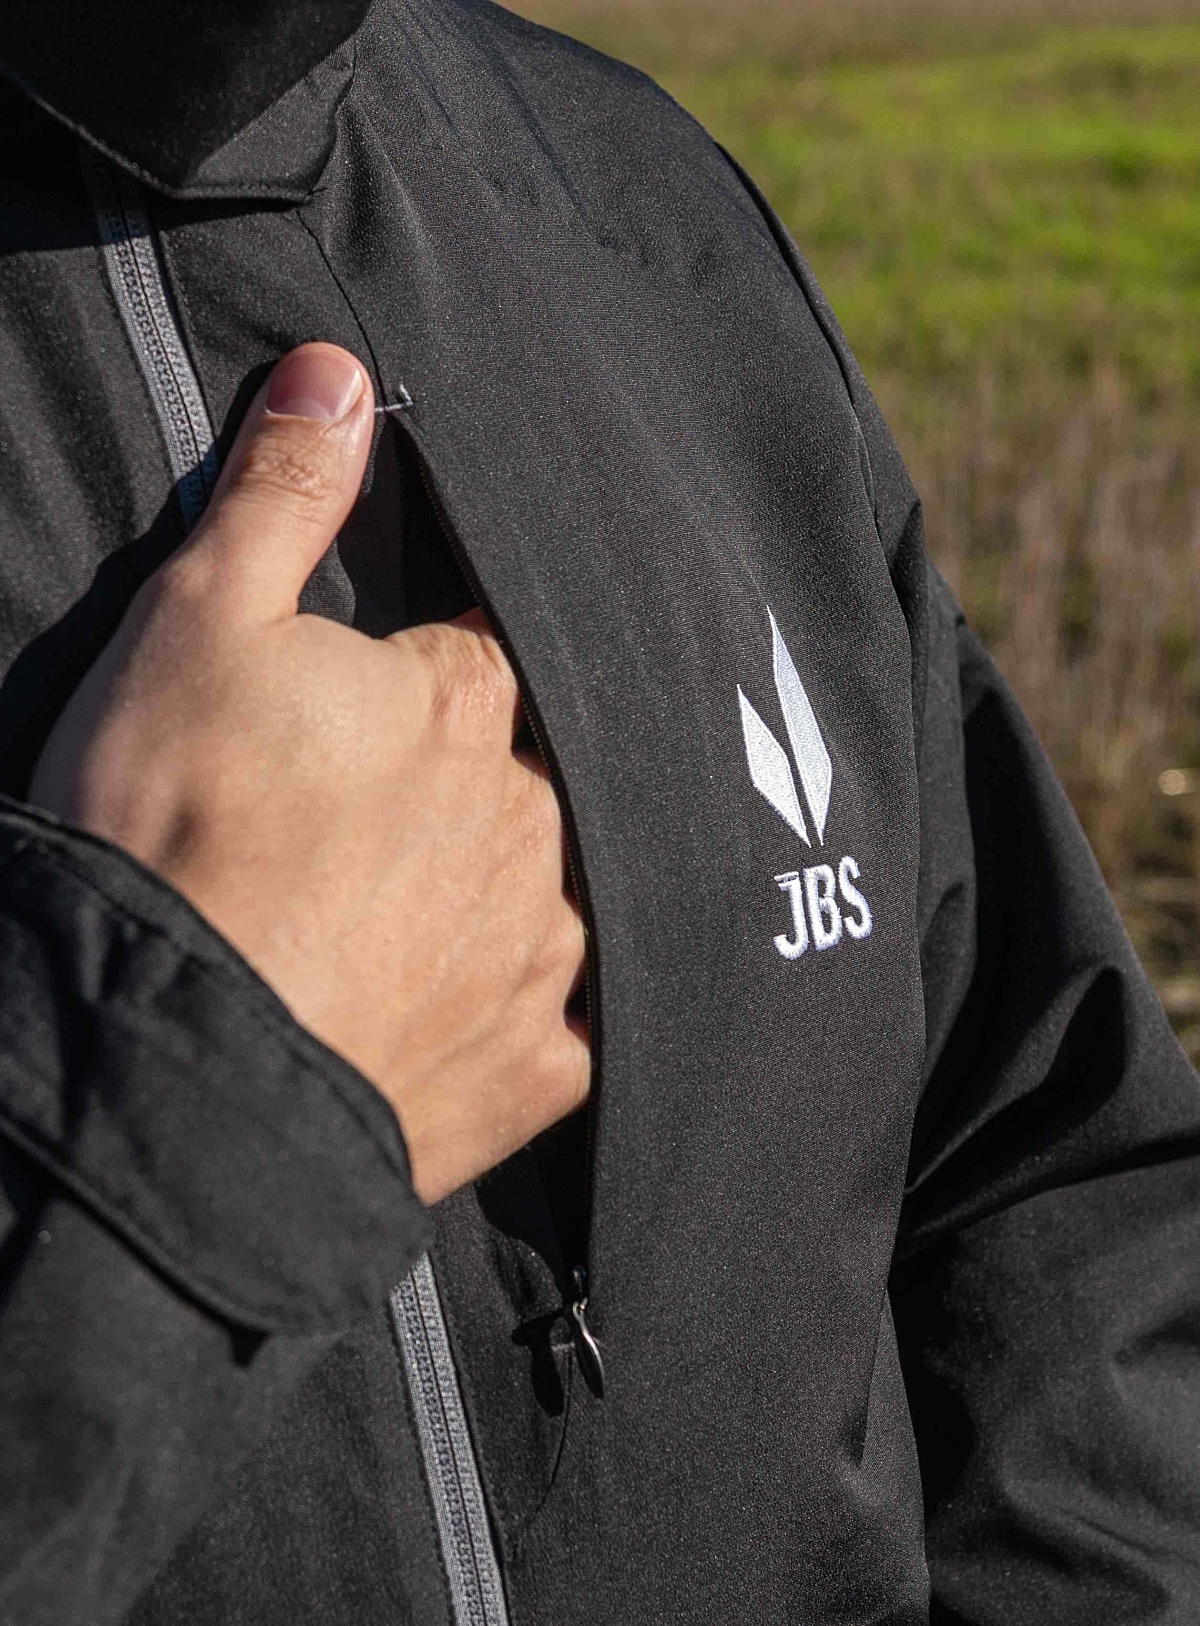 Strong, model-like male hand in left side of JBS Equipment jacket